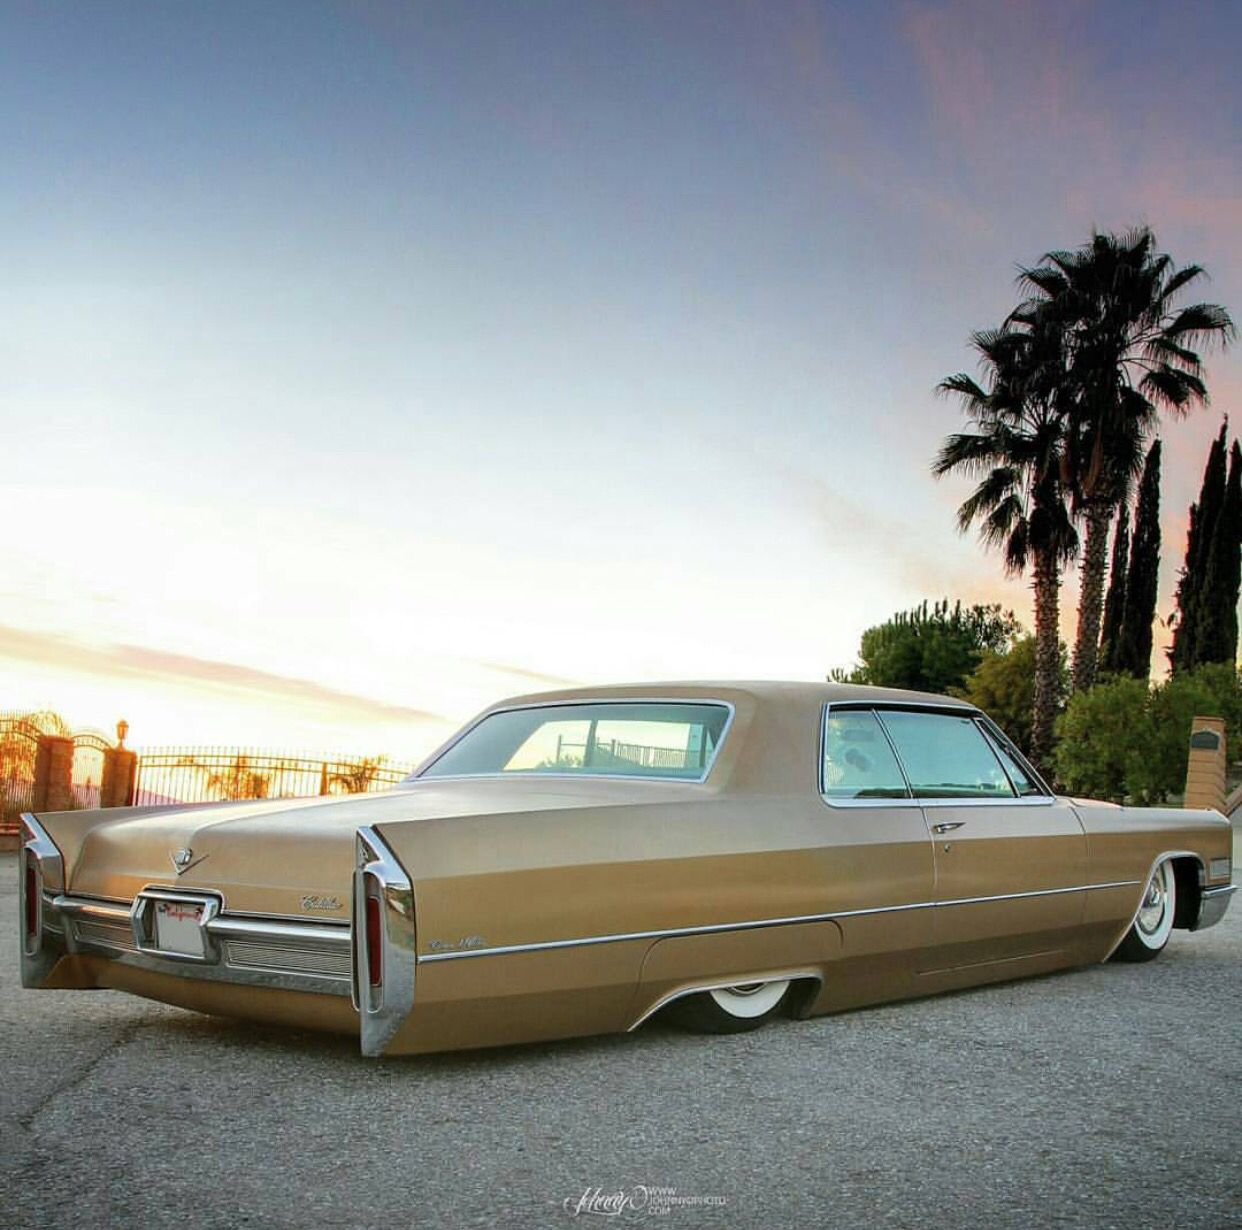 Custom Cadillac Deville For Sale: Rat Rods, Hot Rods, & Muscle Cars